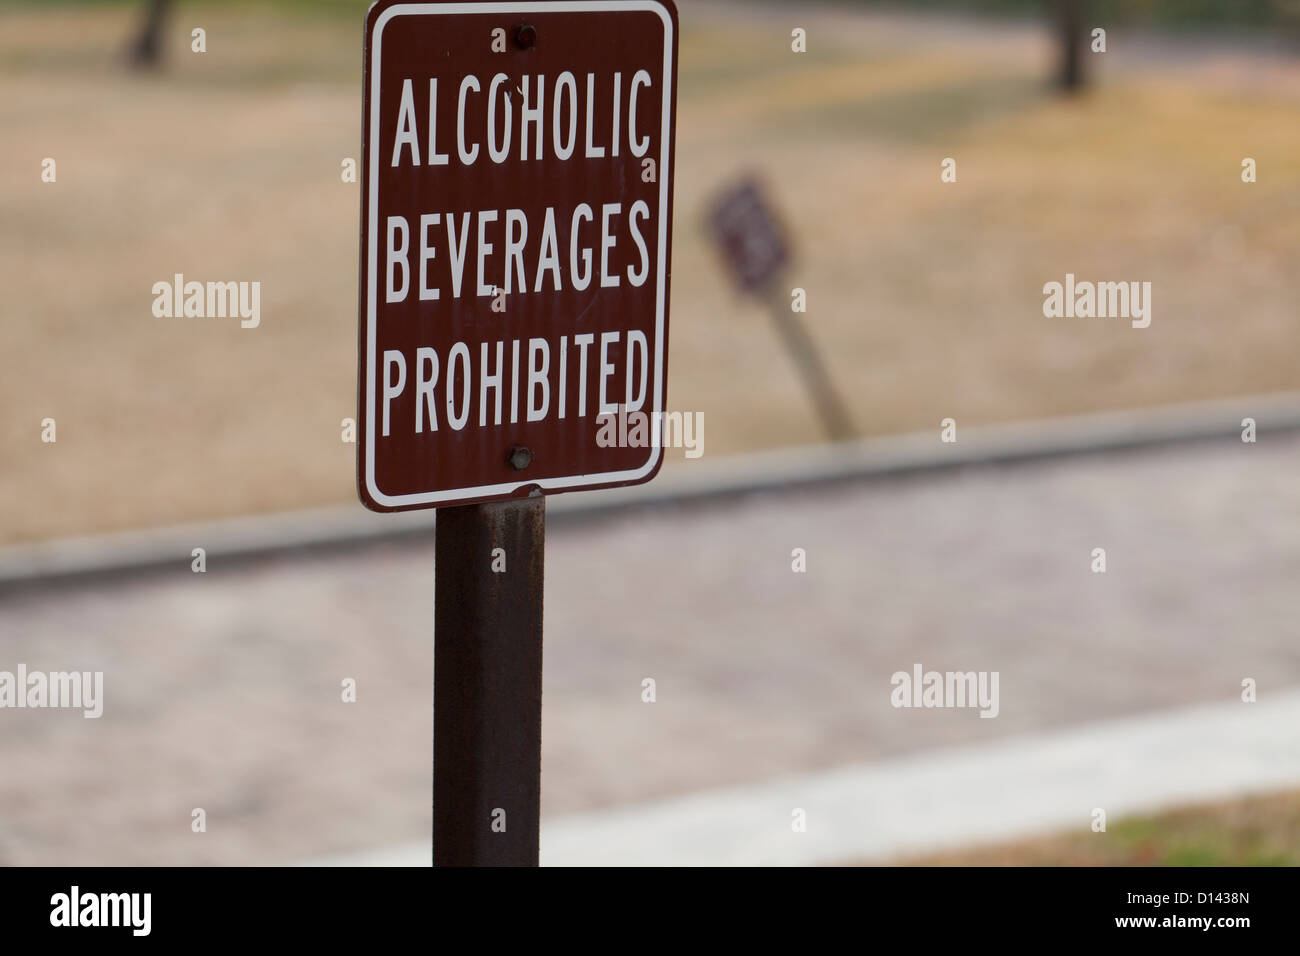 Alcoholic beverages prohibited sign - Stock Image